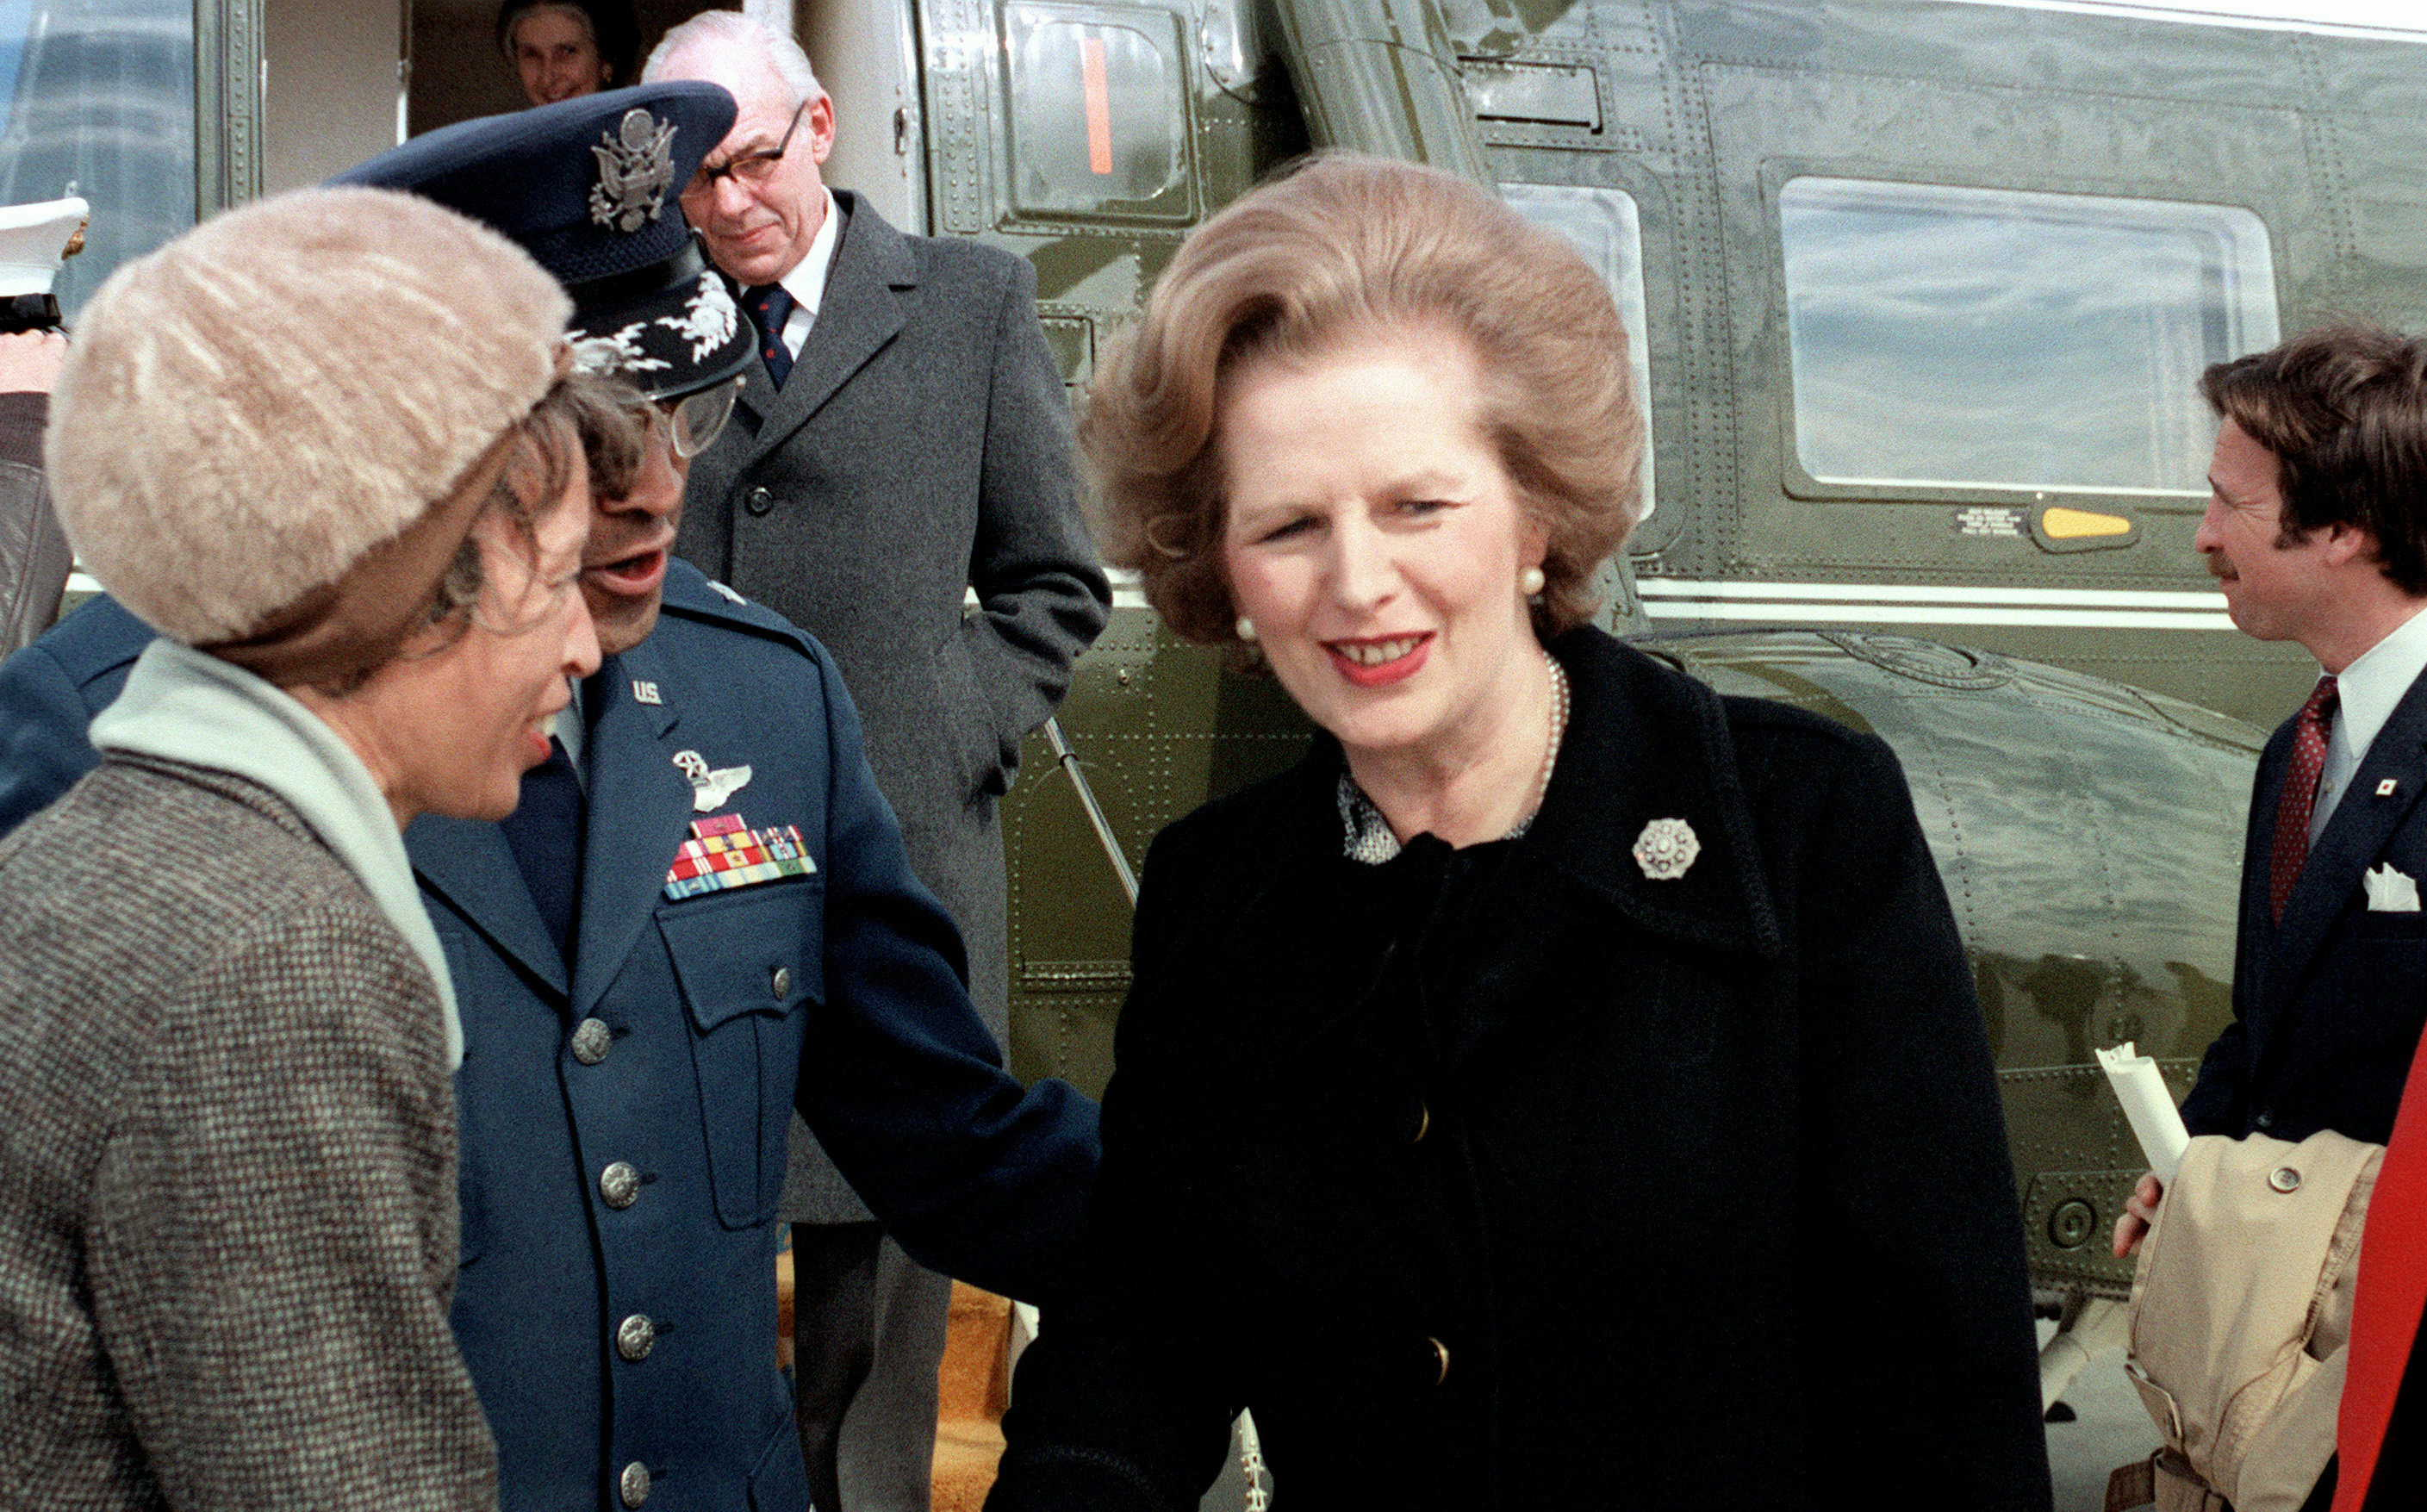 Prime Minister Margaret Thatcher of England is bid farewell on her departure after a visit to the United States. Credit: Wikimedia Commons